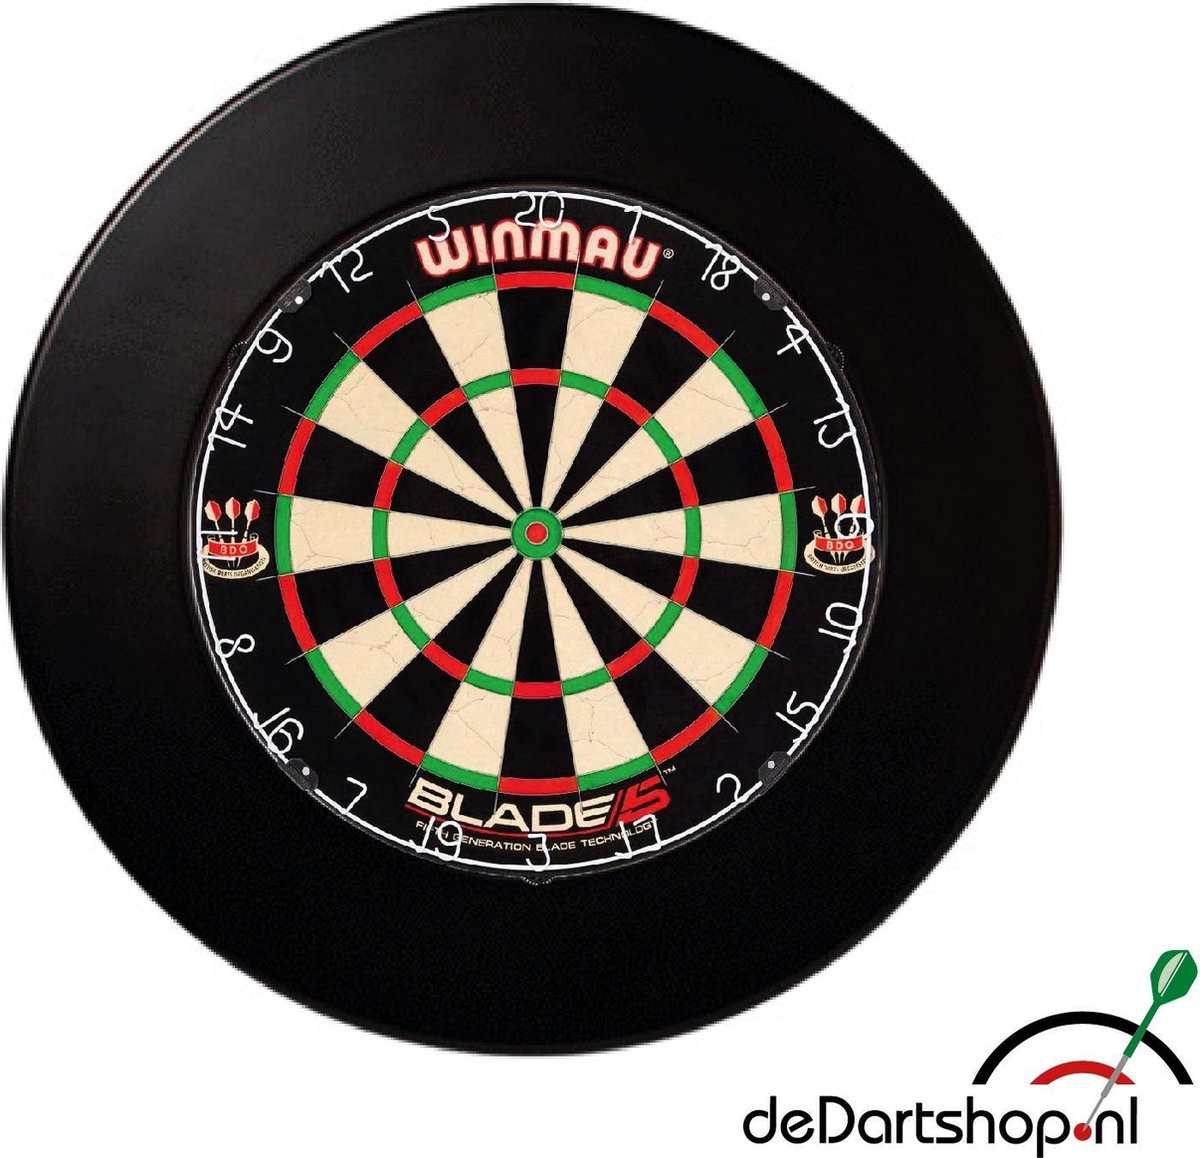 Winmau Blade 5 - Plus Surround Ring Zwart - Complete dartset